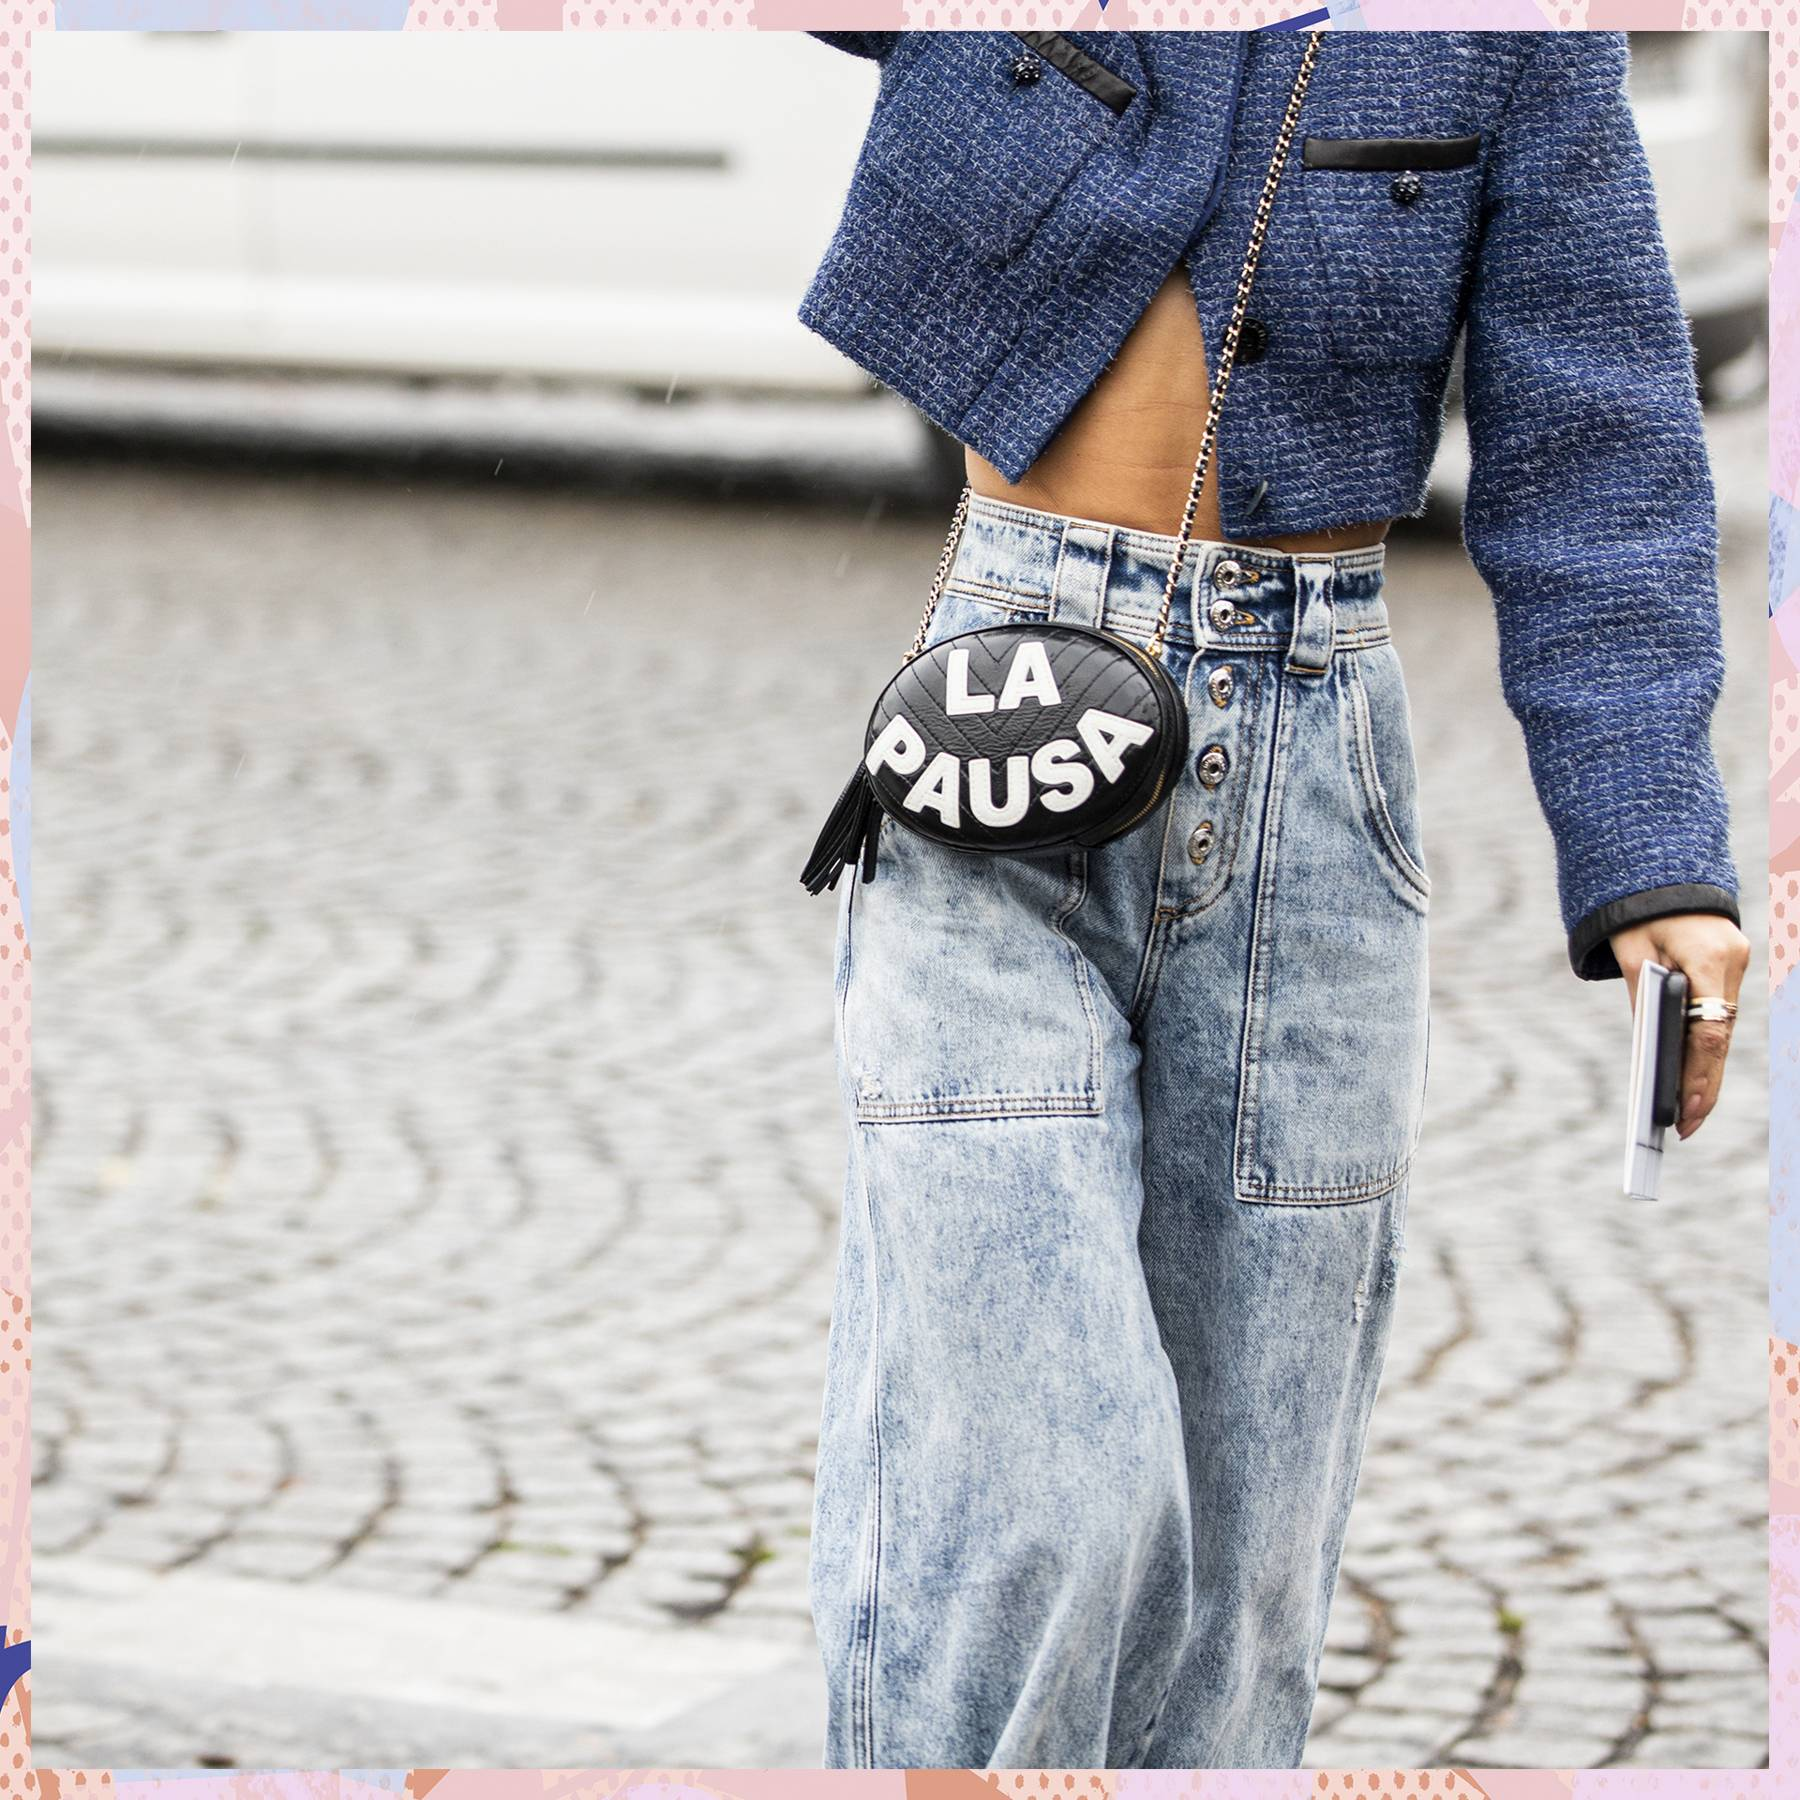 Here's where to find the best vintage jeans online